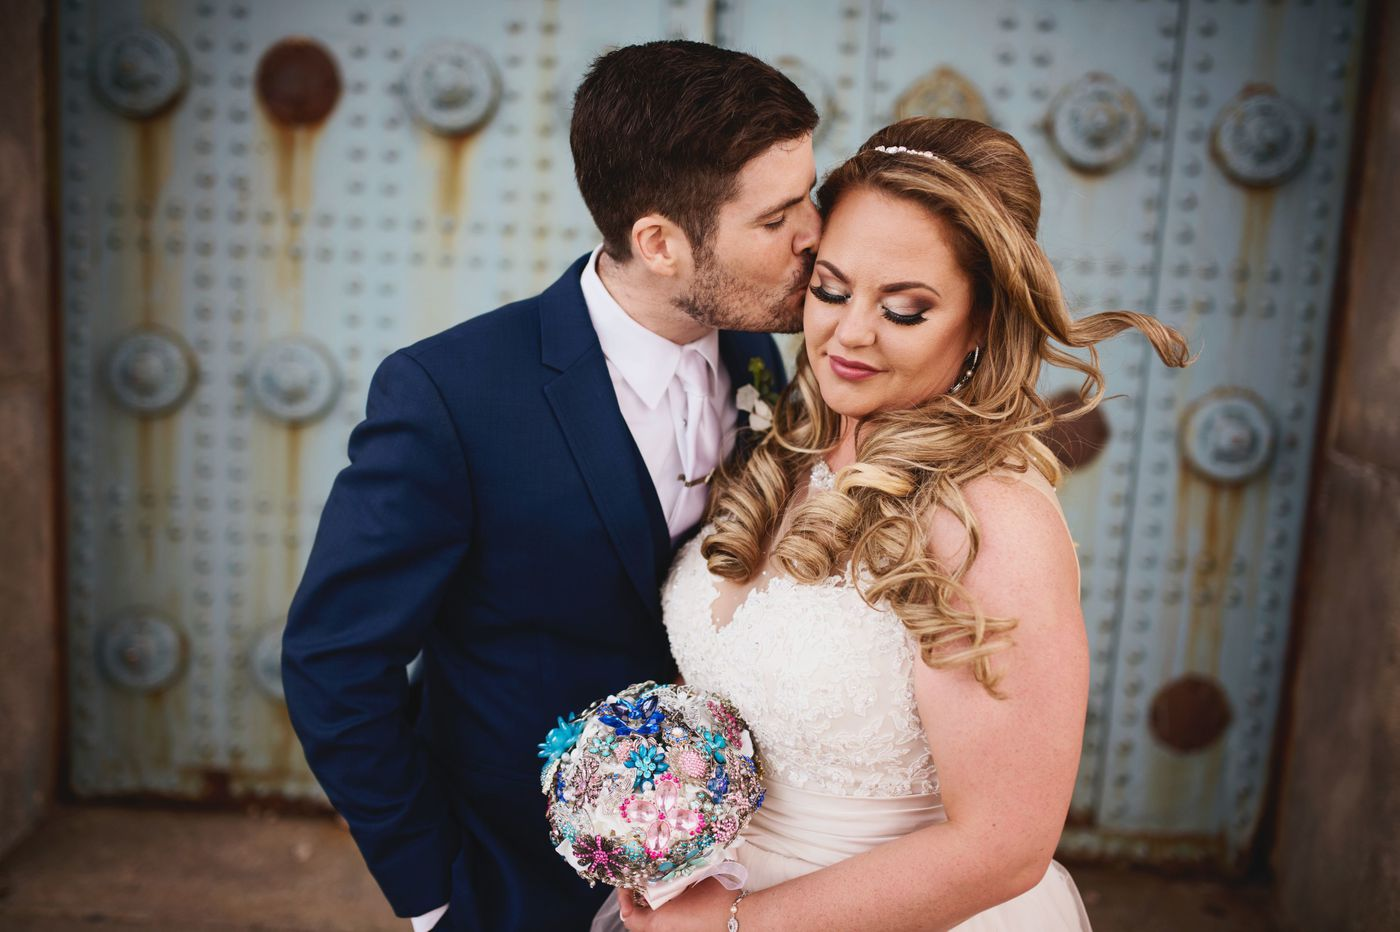 Philadelphia weddings: Melody Dougherty and Kevin Connell